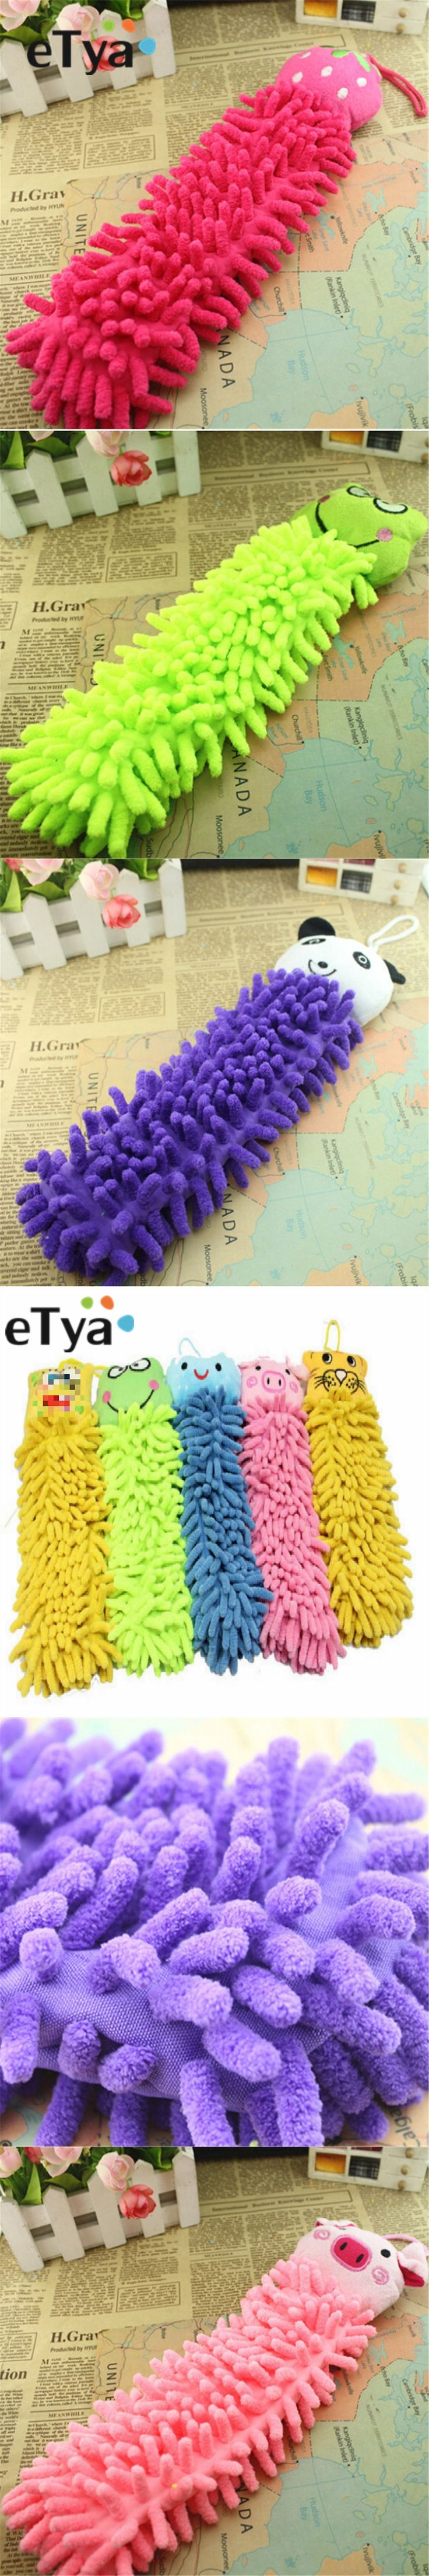 ETYA 1Pcs Microfiber Cartoon Absorbent Hand Dry Towel Clearing lovely animal face Towel For Kitchen Bathroom Office Car Use